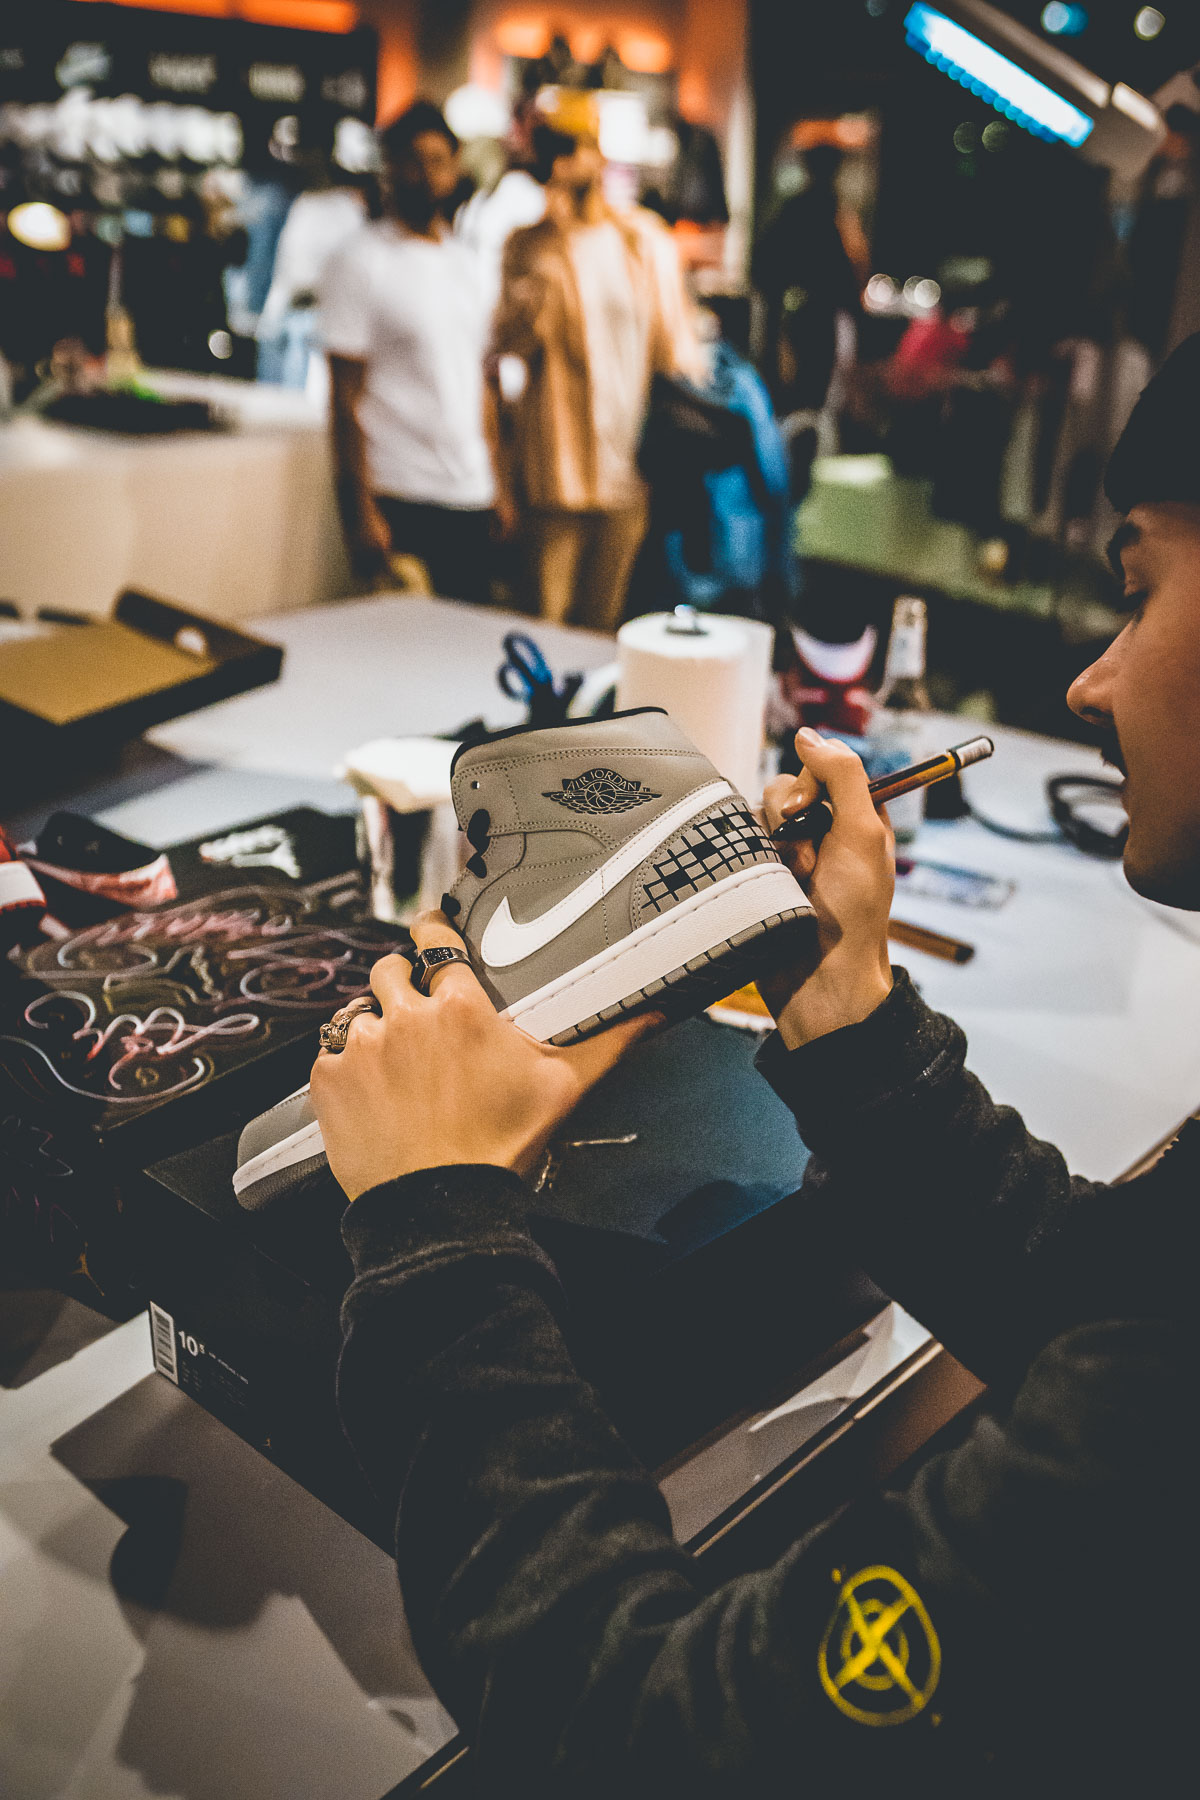 Nike Air Jordan 1 Mid Customization Event by SNIPES Photo